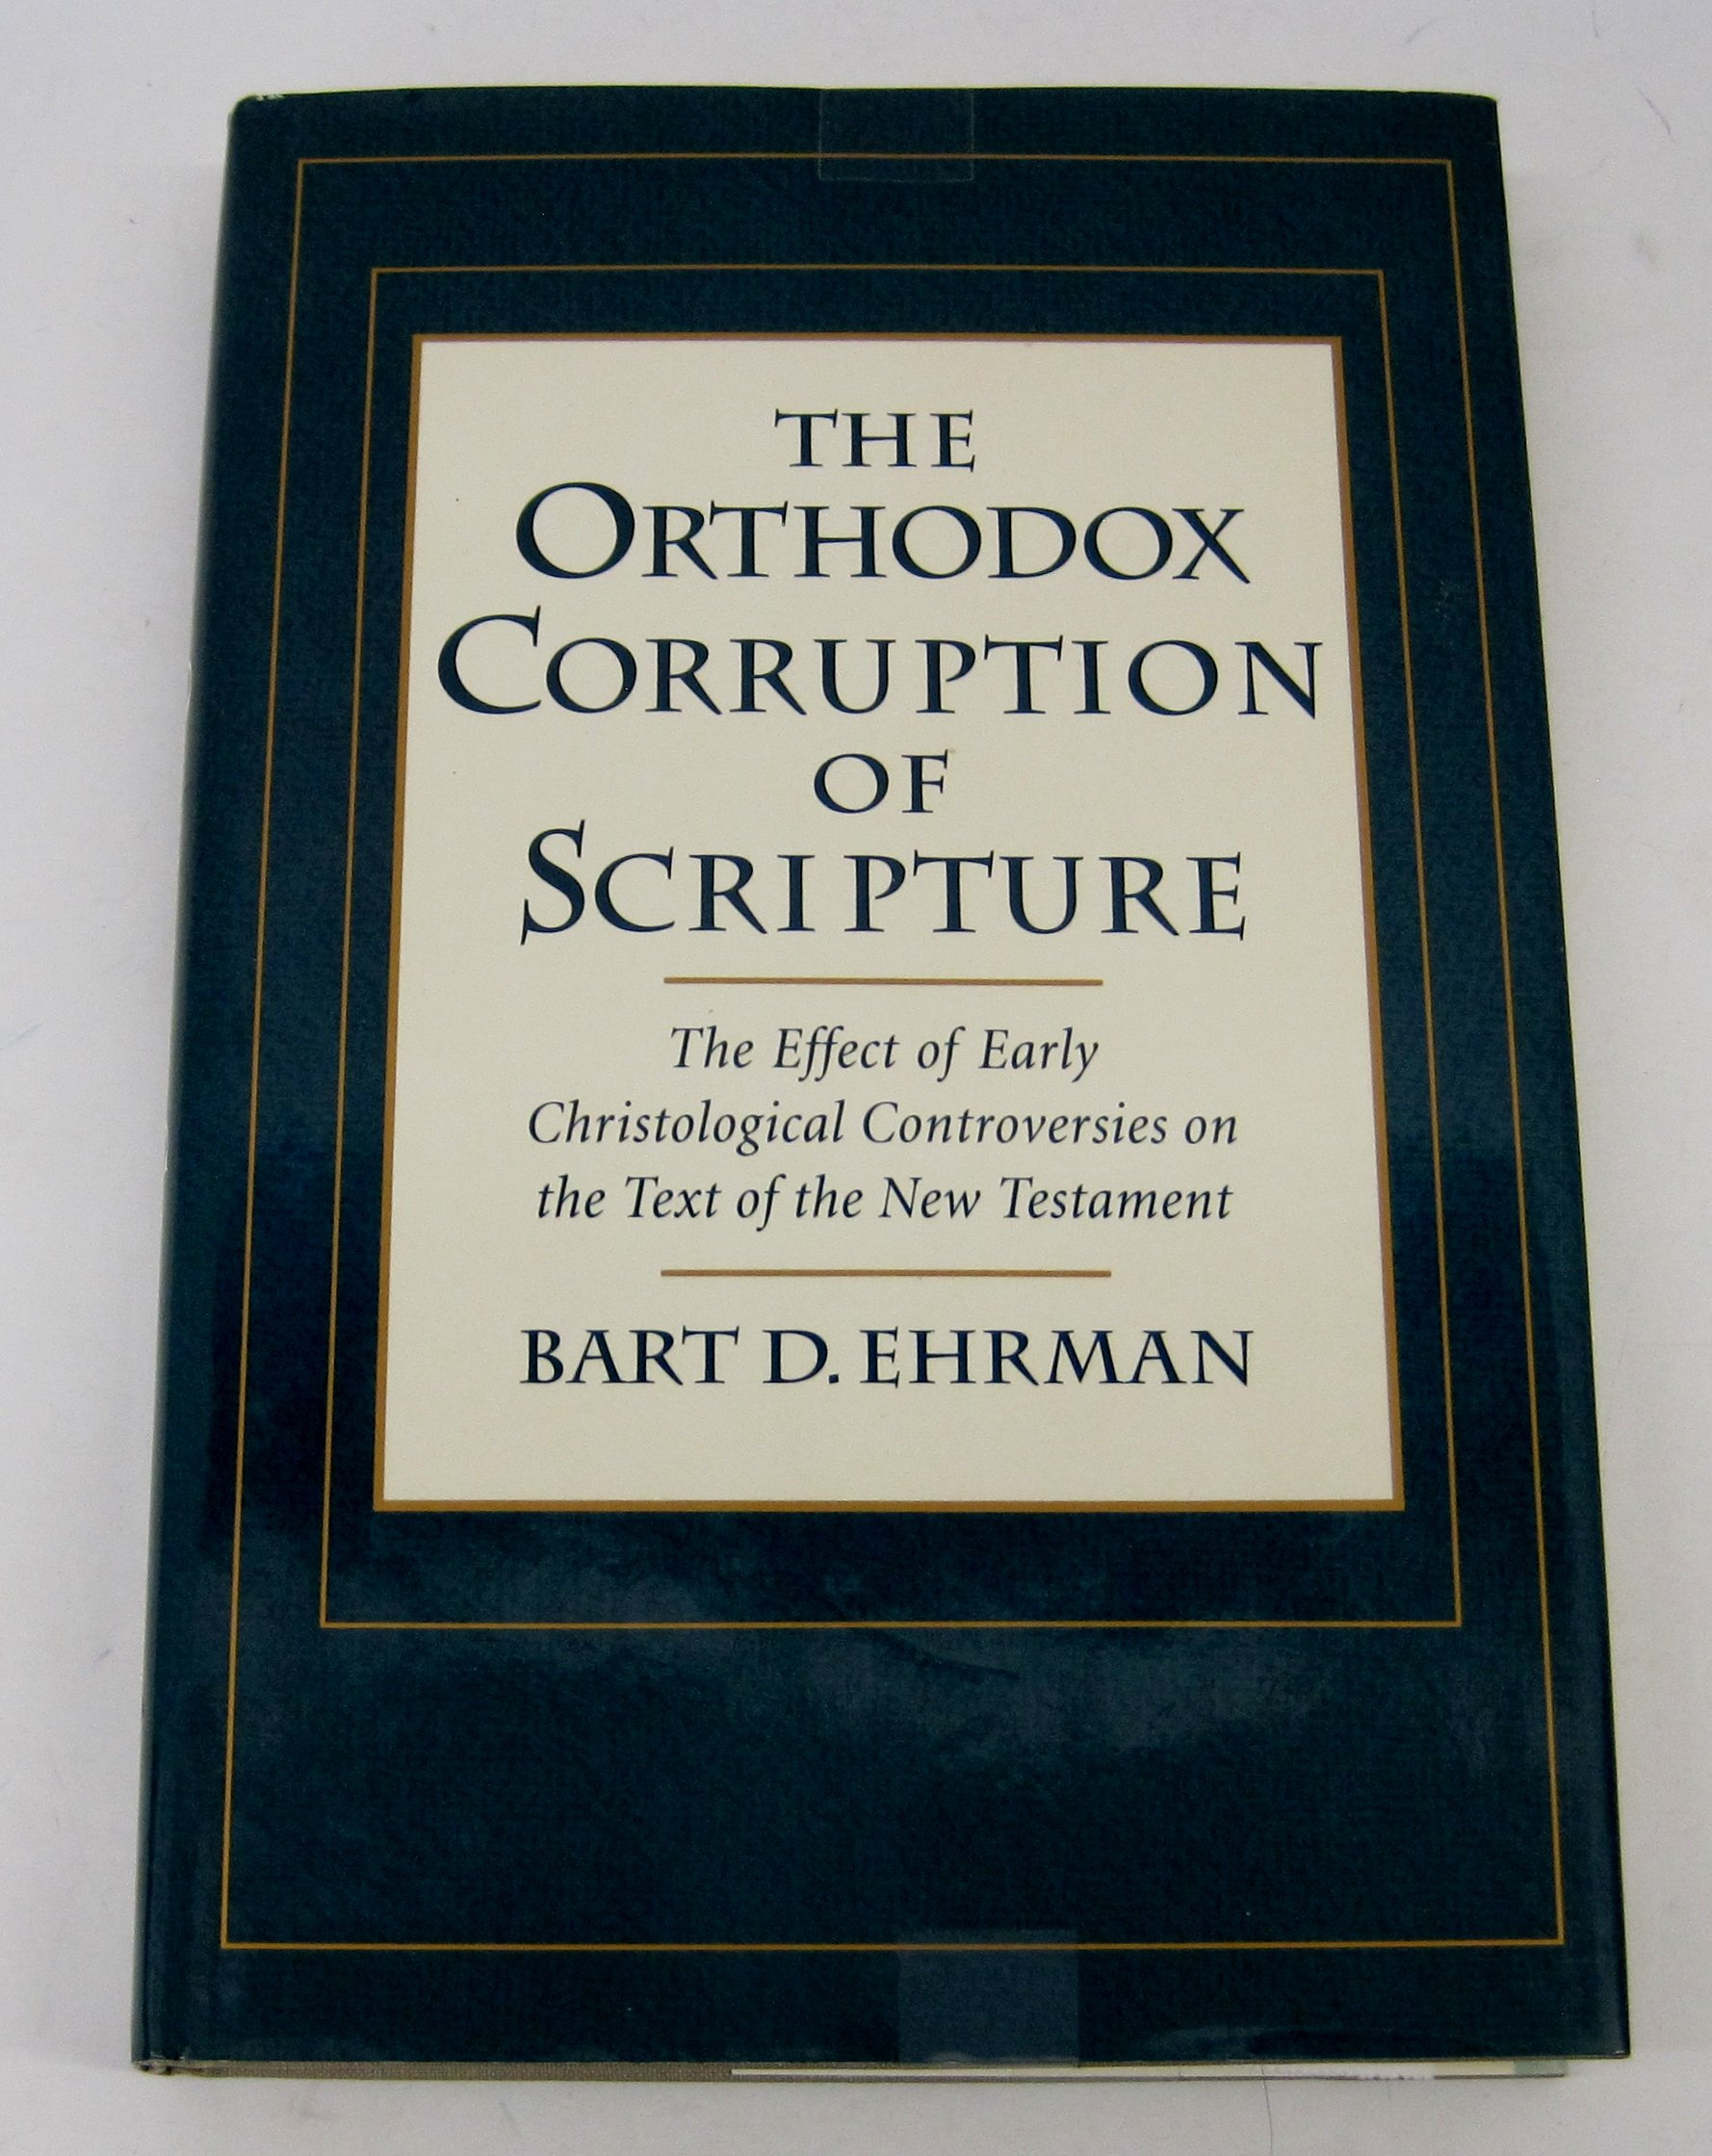 The Effect of Early Christological Controversies on the Text of the New Testament The Orthodox Corruption of Scripture